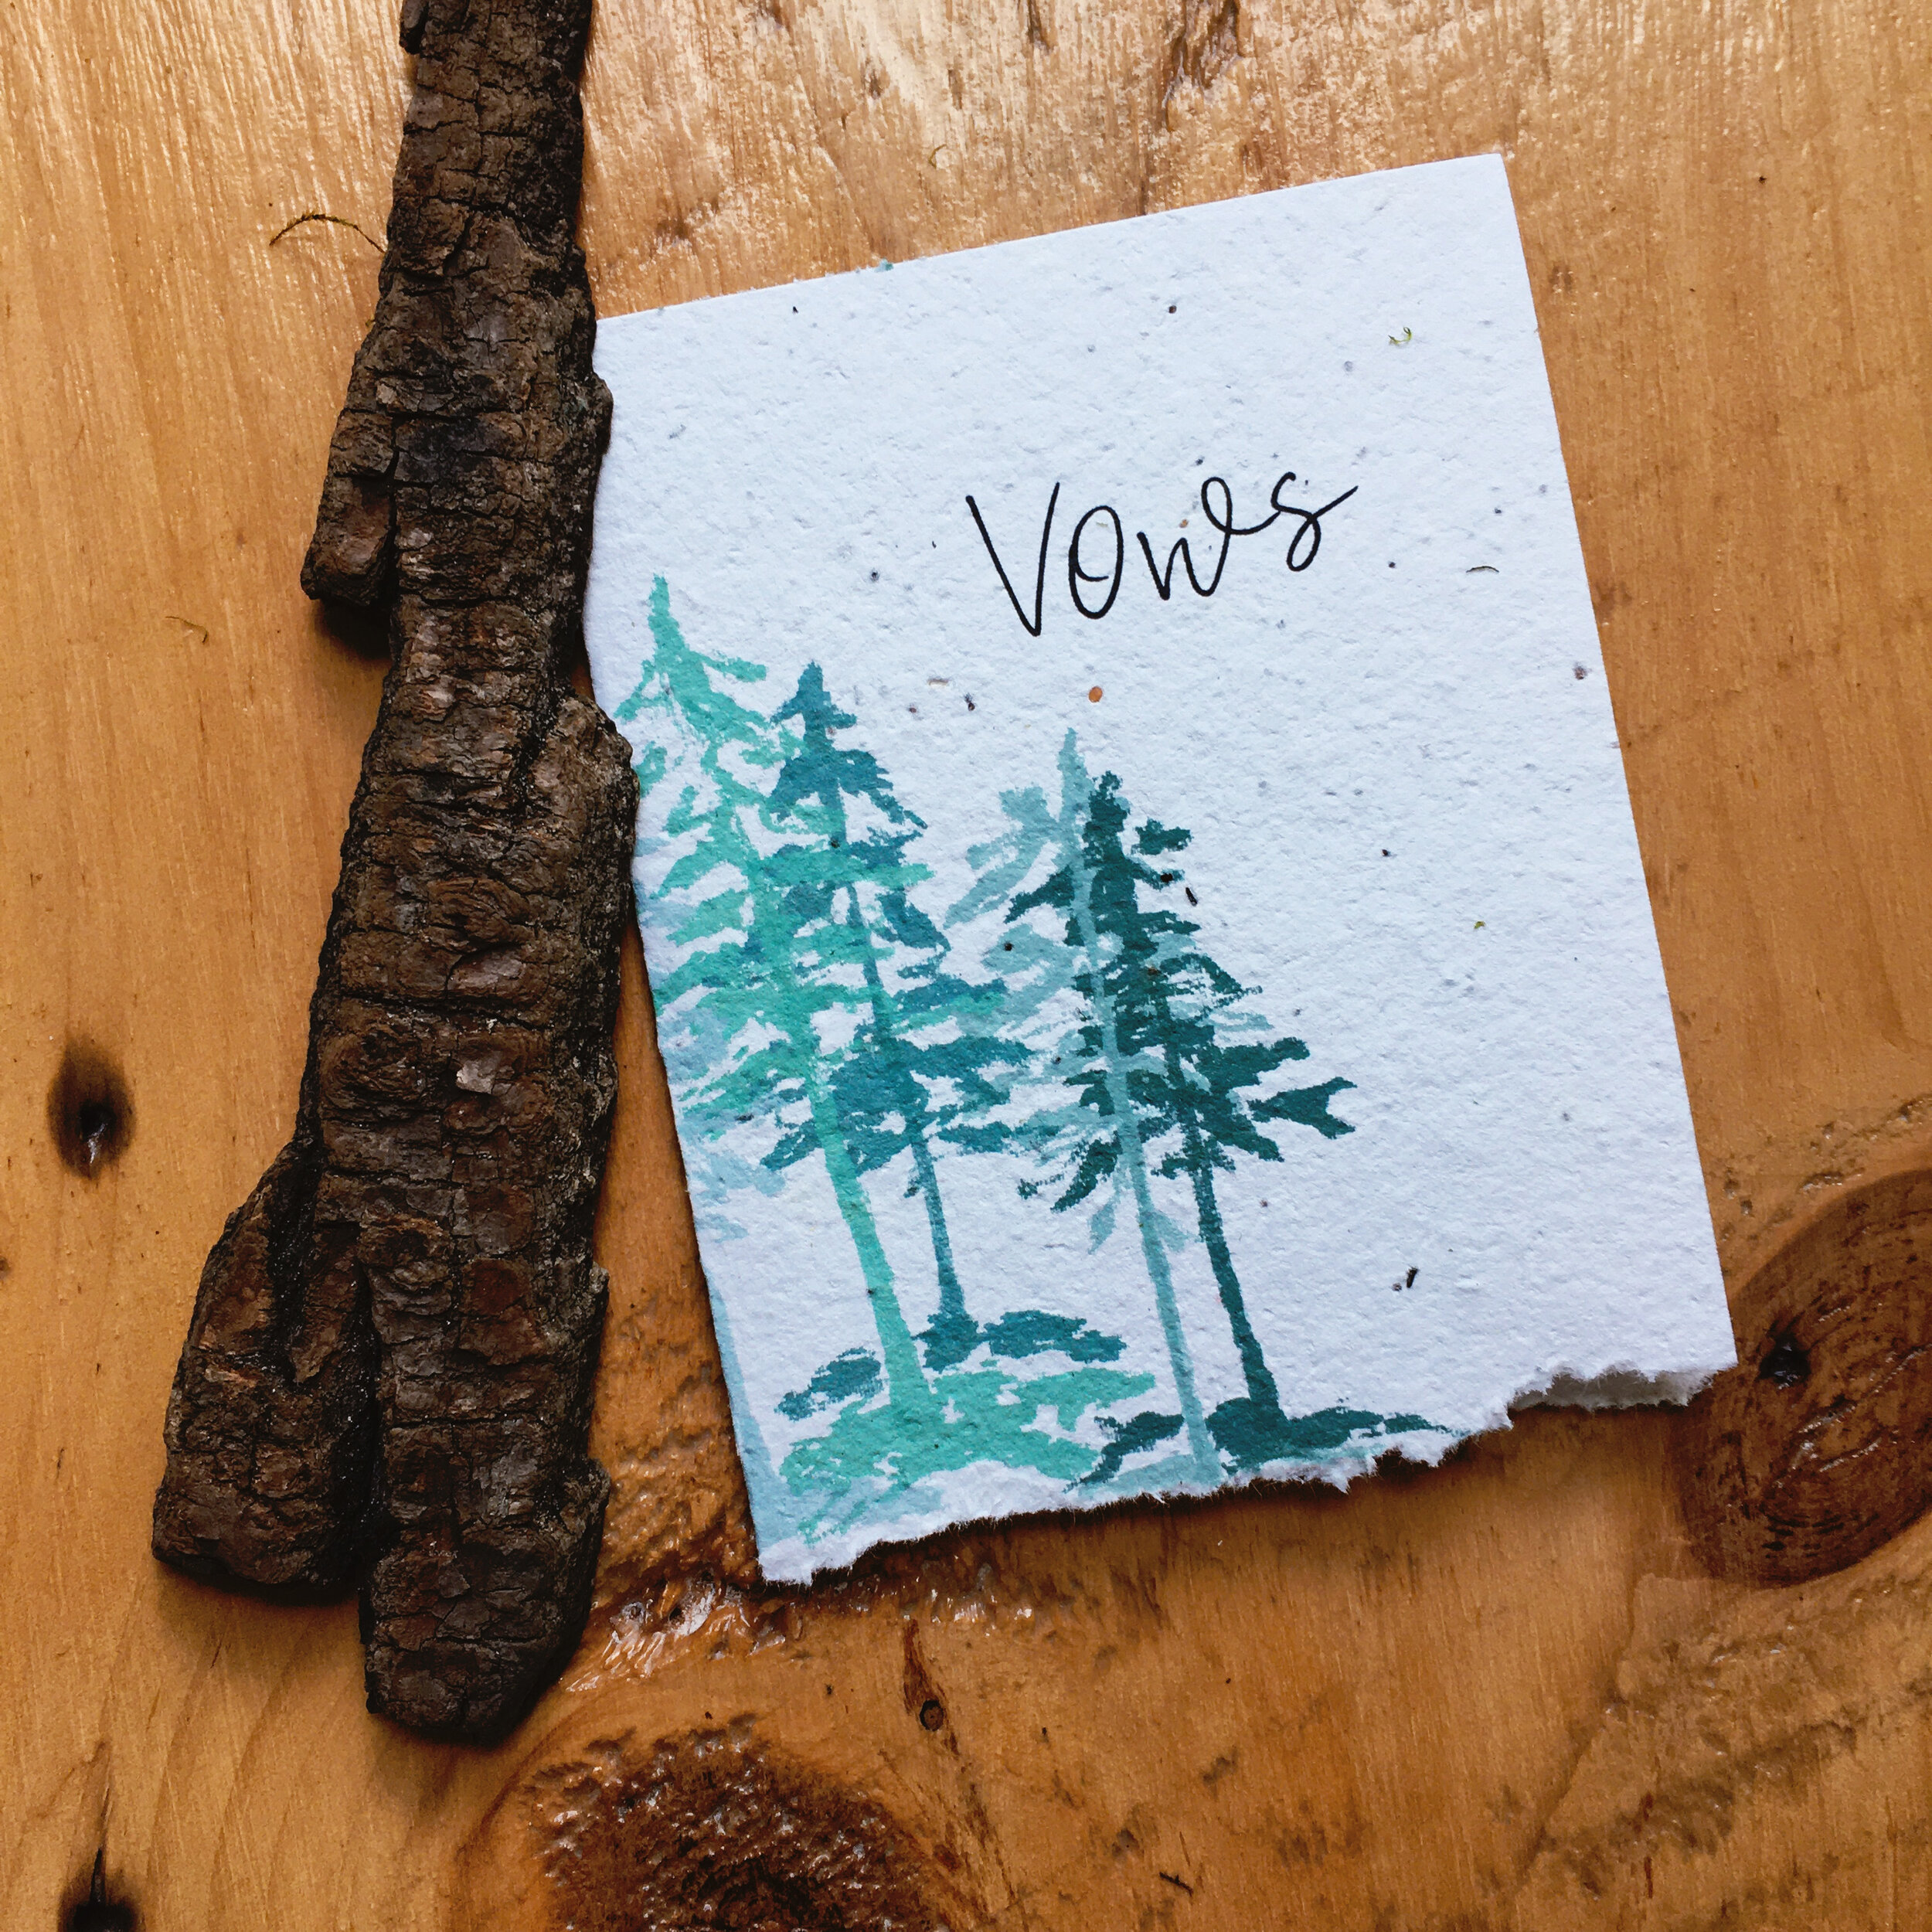 Set of 2 Custom Mountain Forest Vow Books for Wedding Vows. Rustic Wedding Vow Book Set